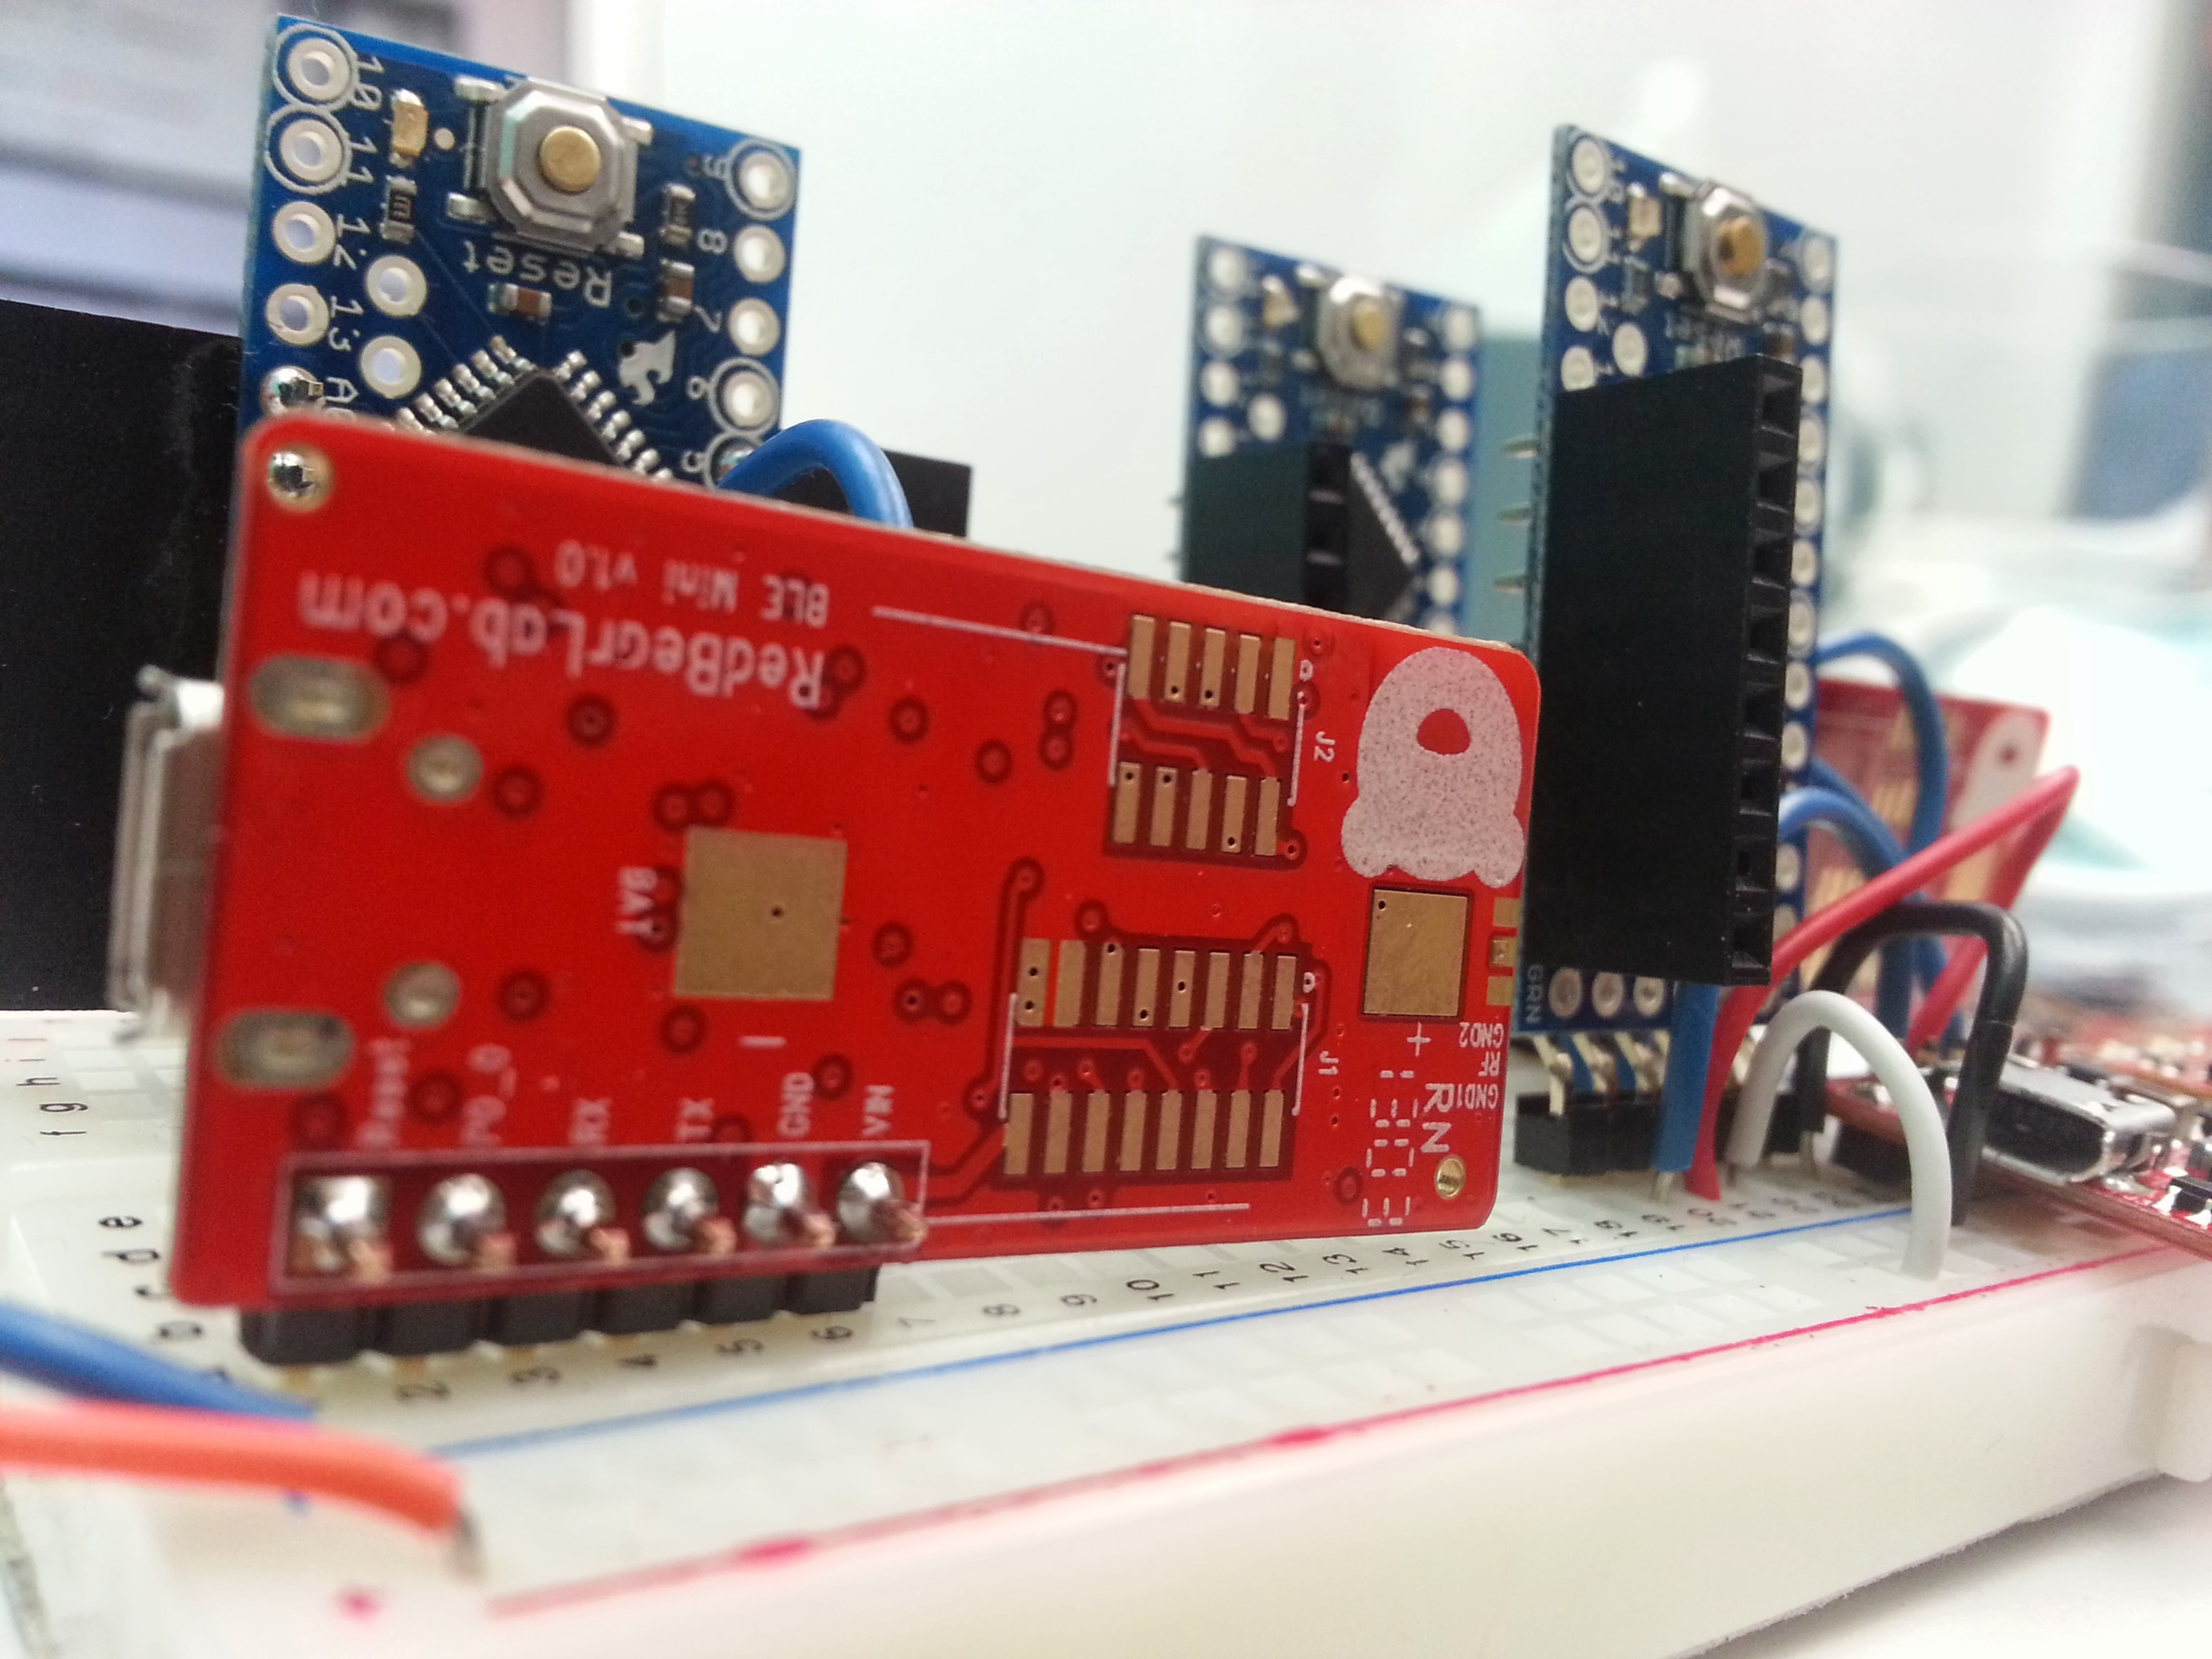 Bluetooth 40 Low Energy BLE Shield for Arduino V21